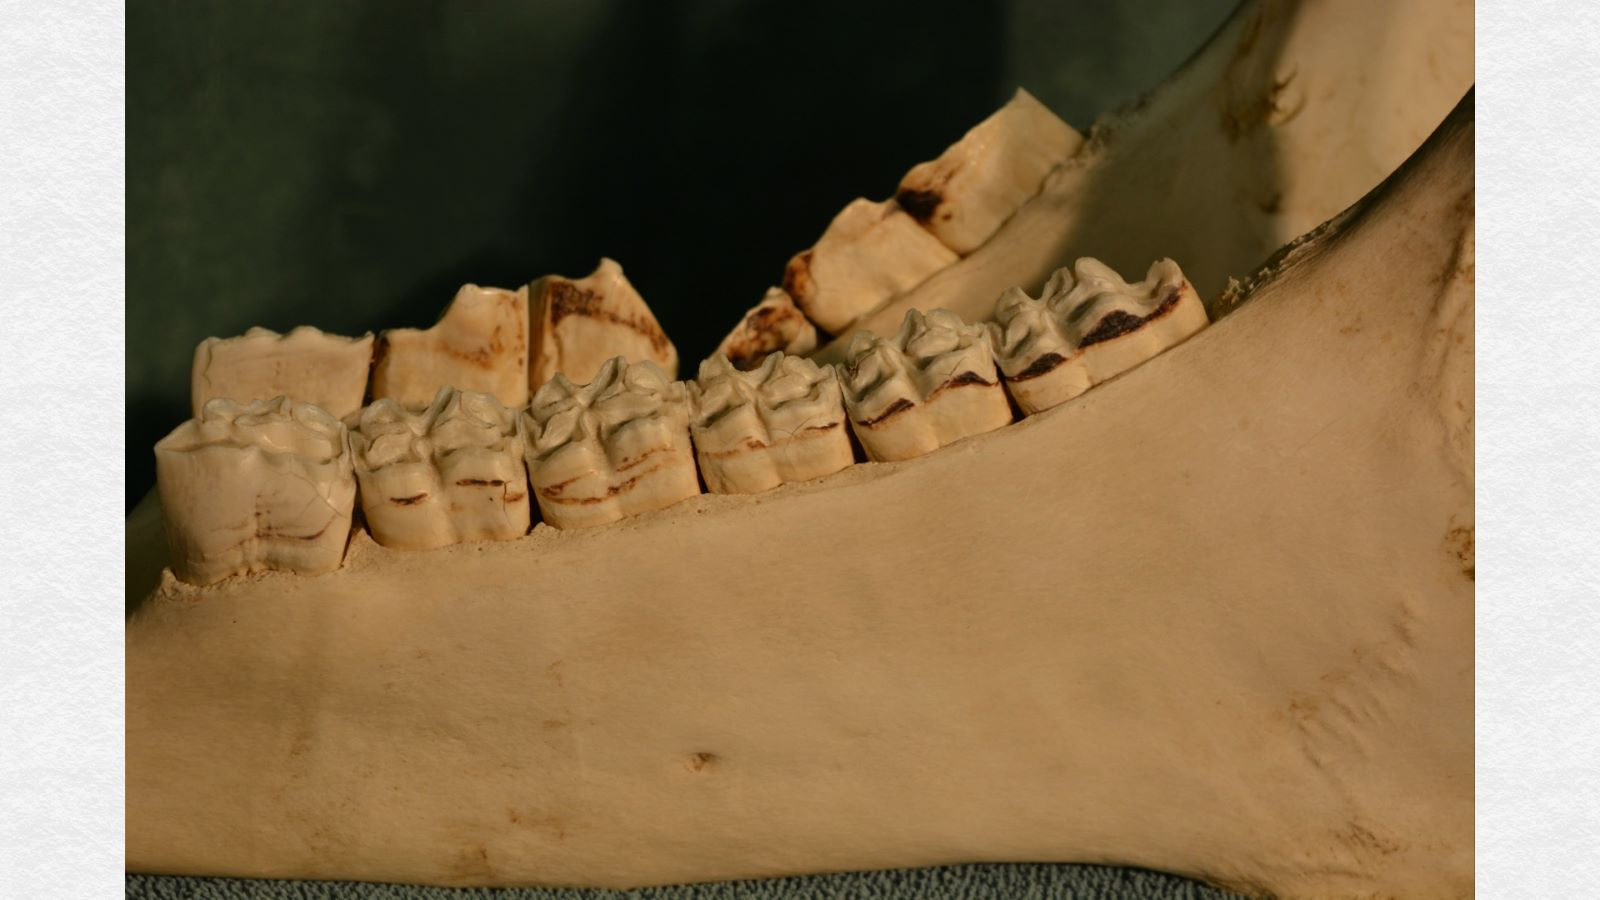 Compare the findings above with the smooth, level contour of the bone of the unaffected side (foreground).